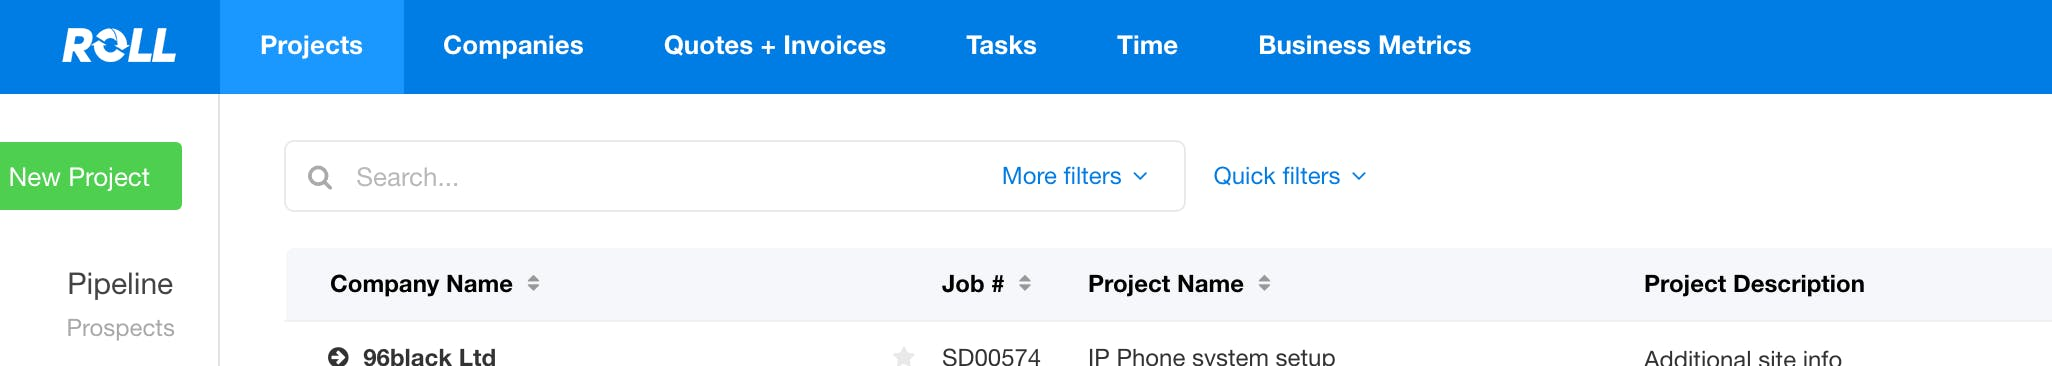 Projects search screen in Roll